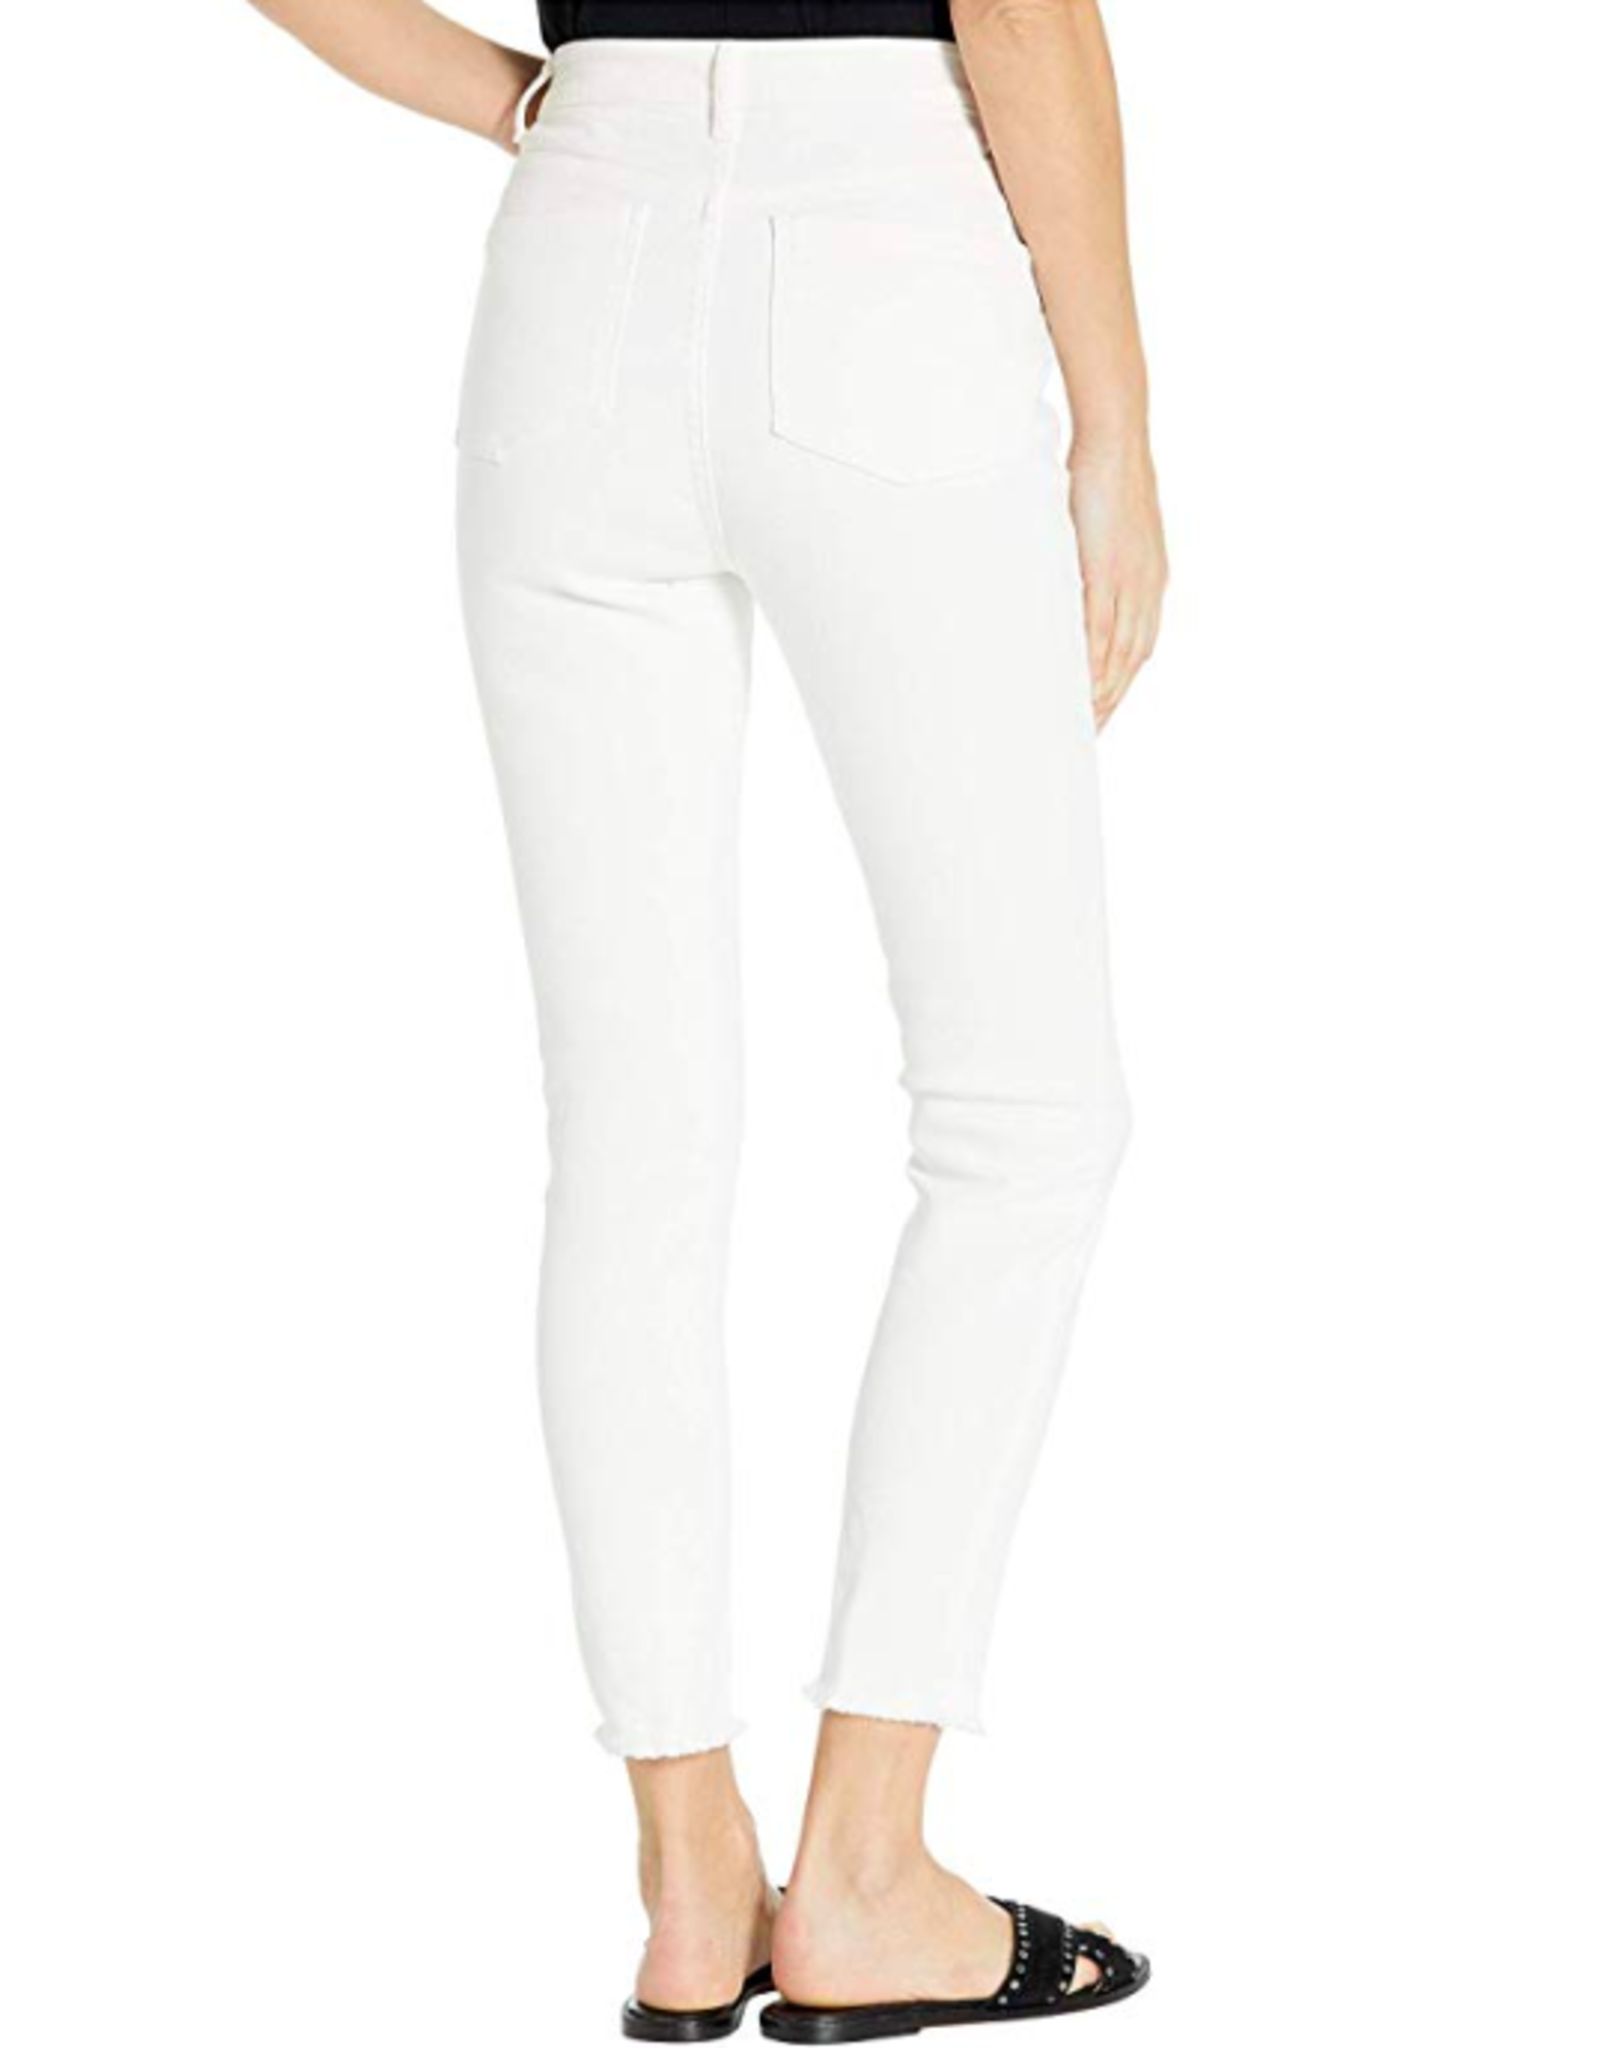 HIGH RISE BUTTON FLY JEANS